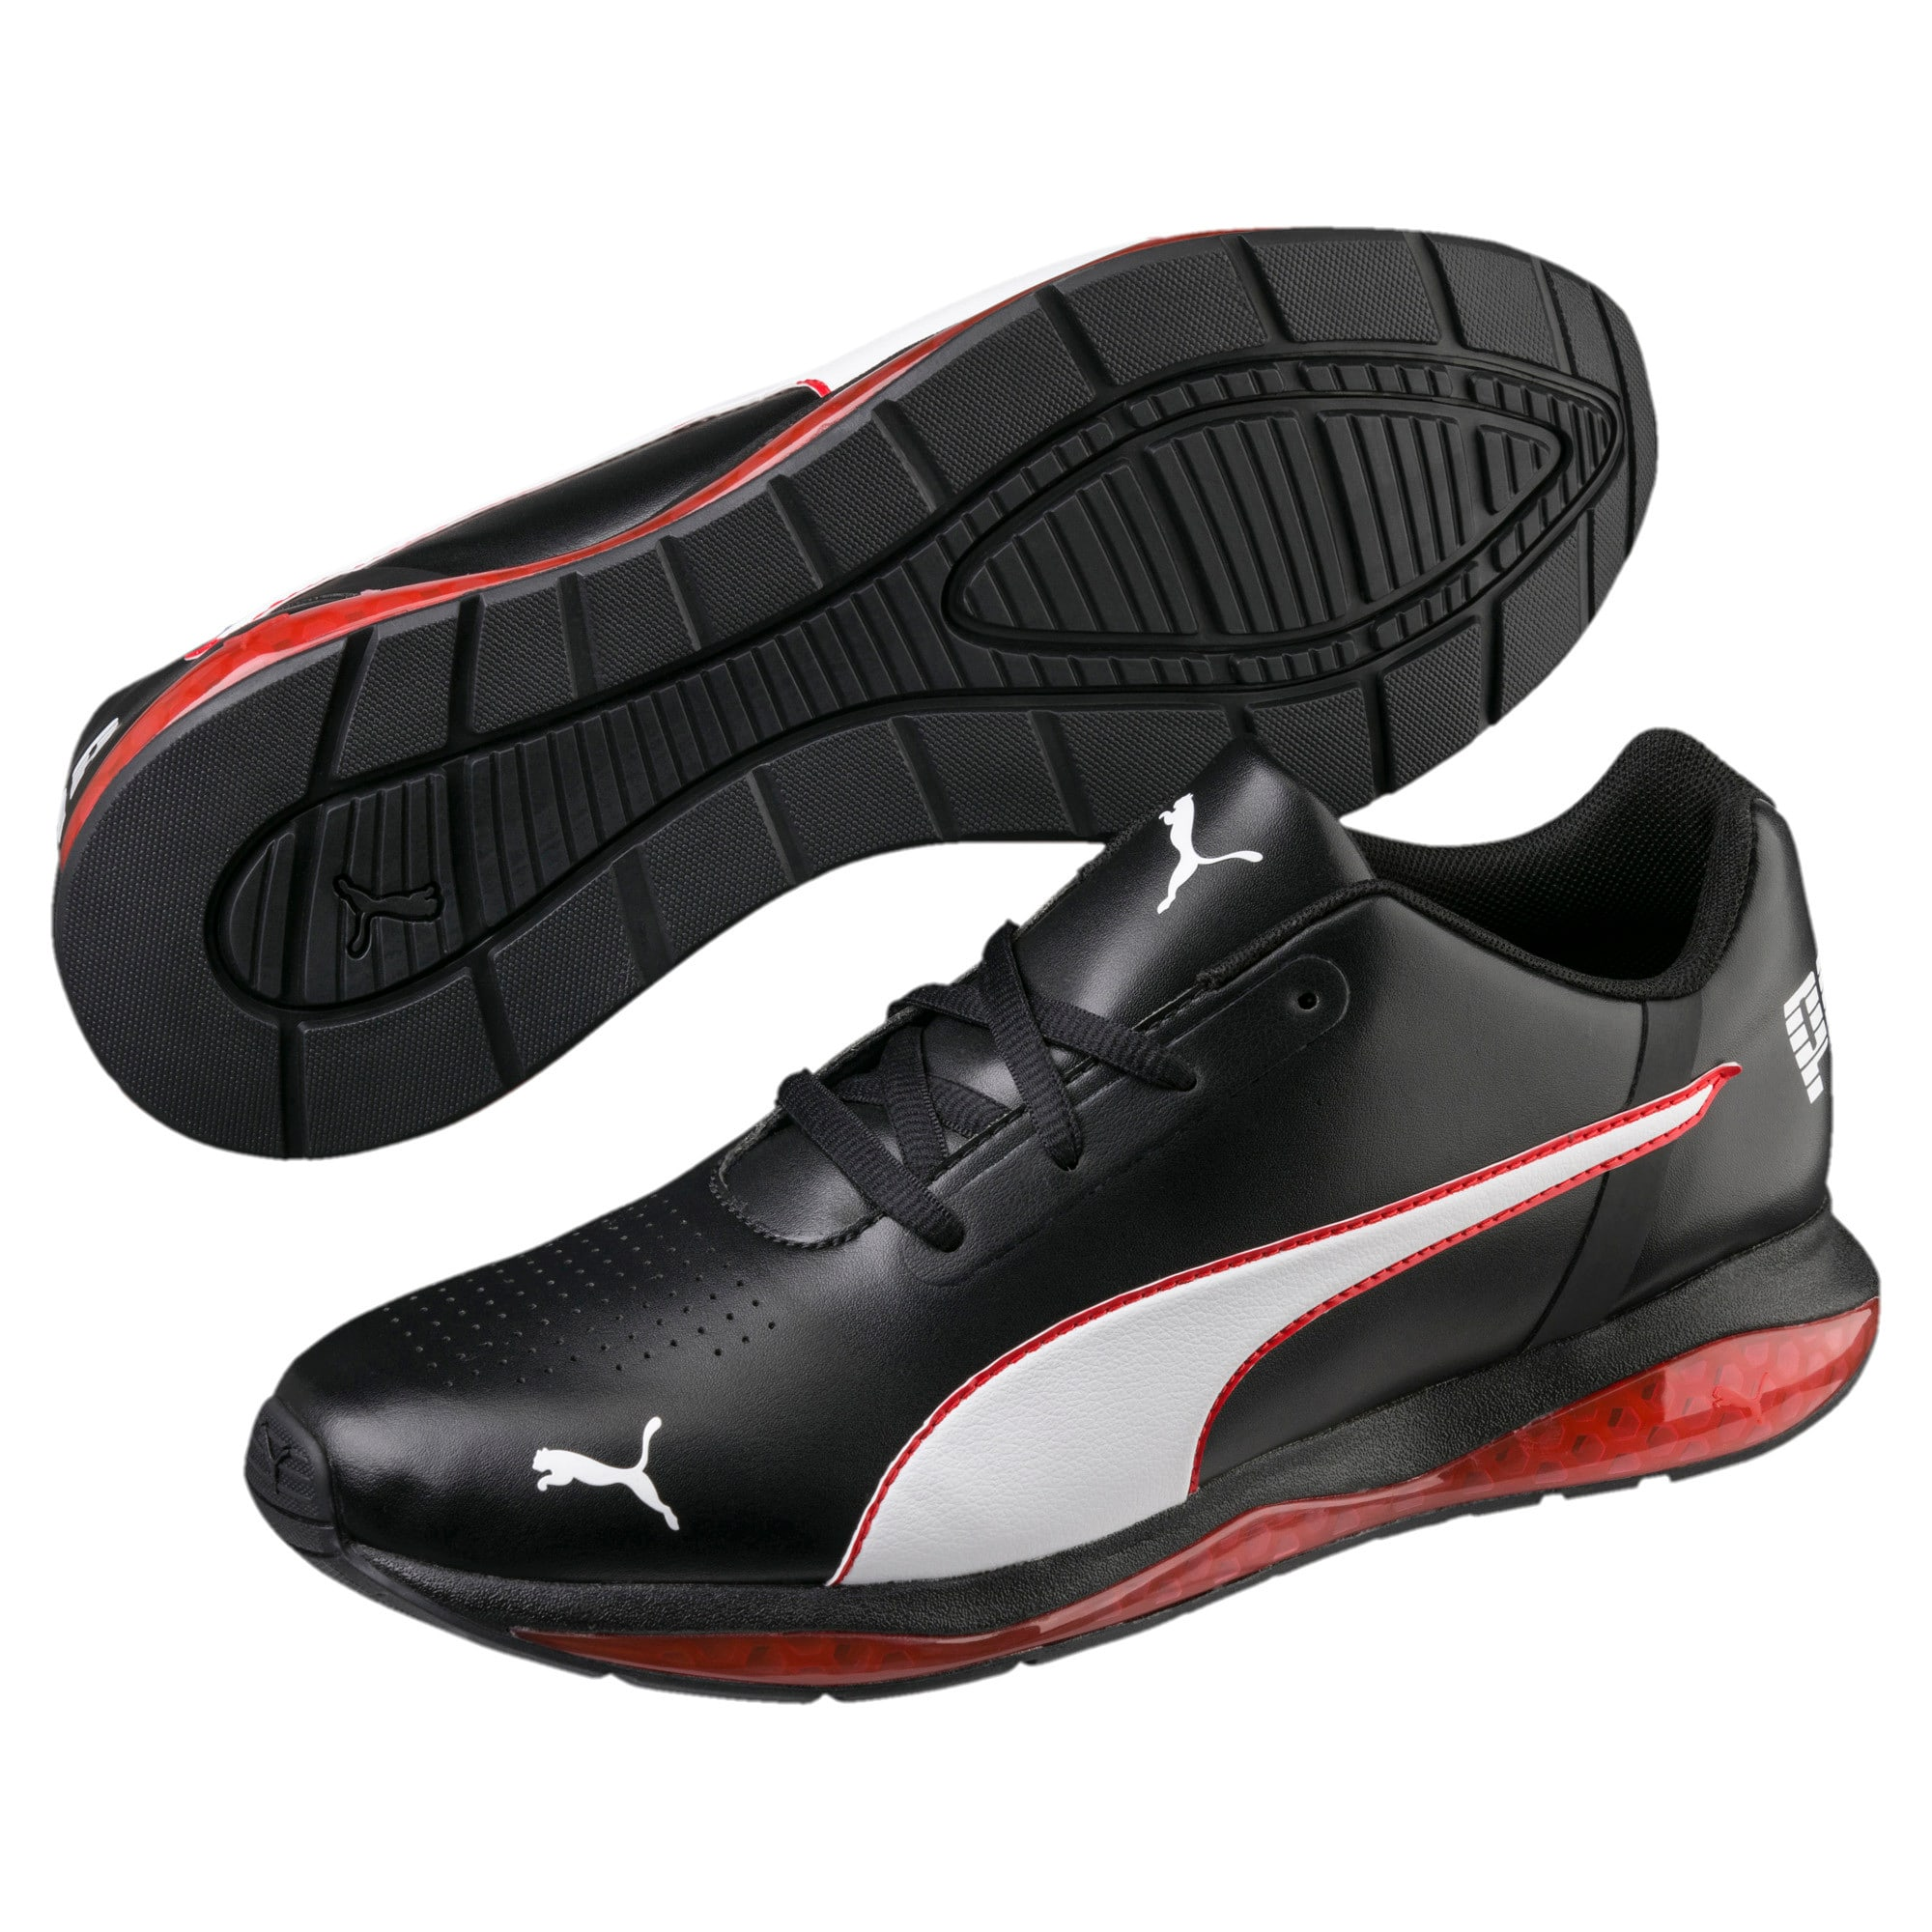 Thumbnail 2 of CELL Ultimate SL Running Shoes, Pma Blk-Pma Wht-Hgh Rsk Rd, medium